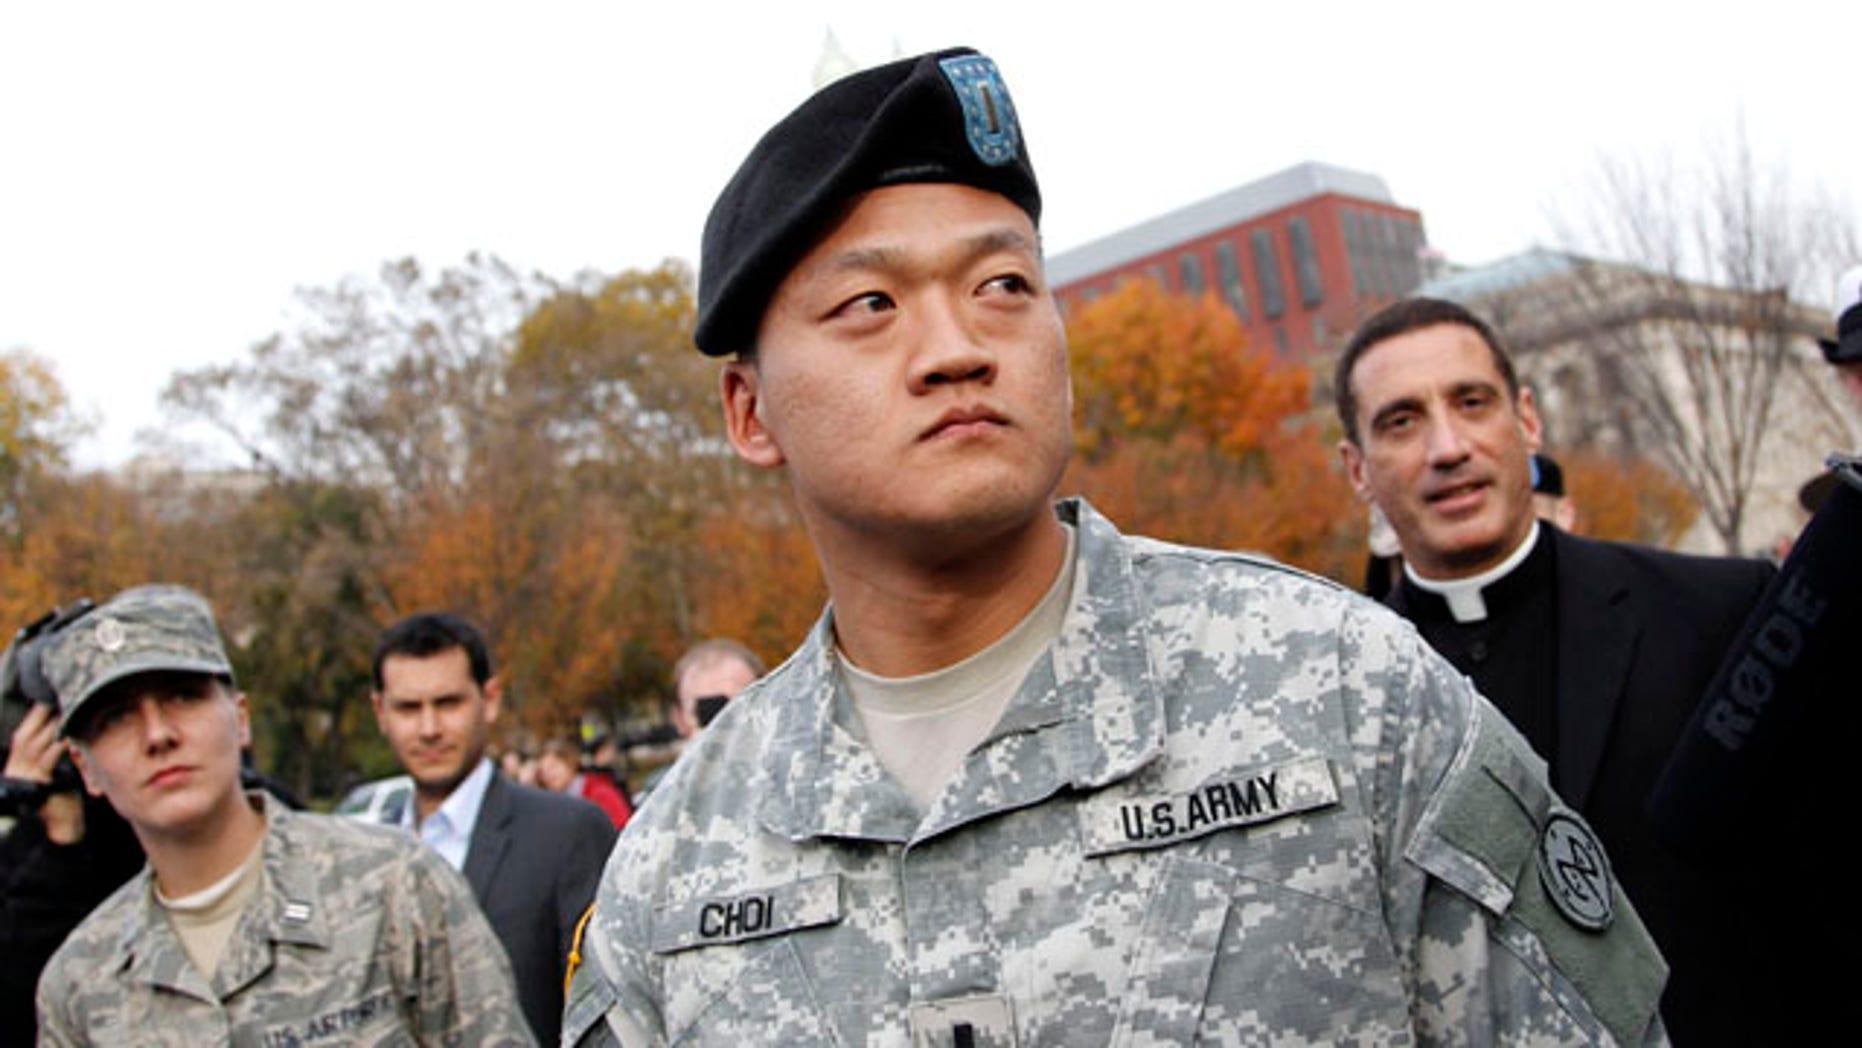 Nov. 15: Lt. Dan Choi, center, is seen in front of the White House in Washington, D.C., moments before he handcuffed himself to the fence of the White House during a protest for gay rights. (AP)